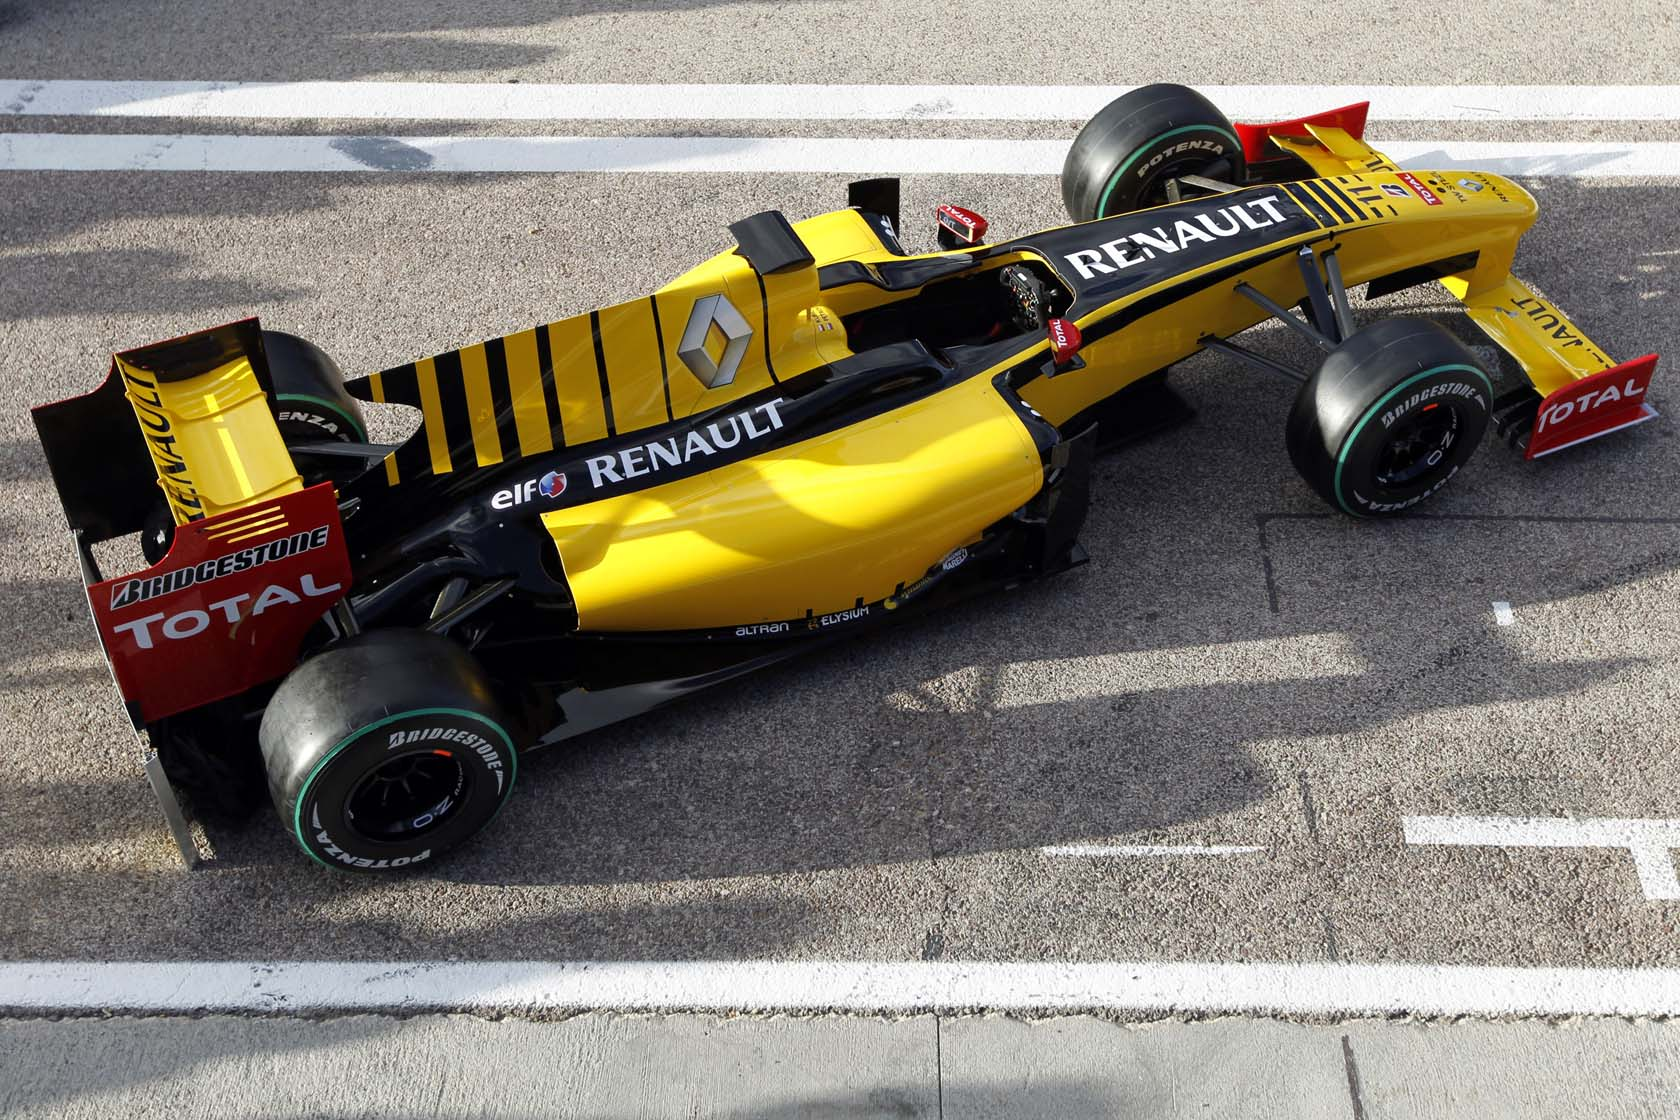 Renault R 30 photo 05